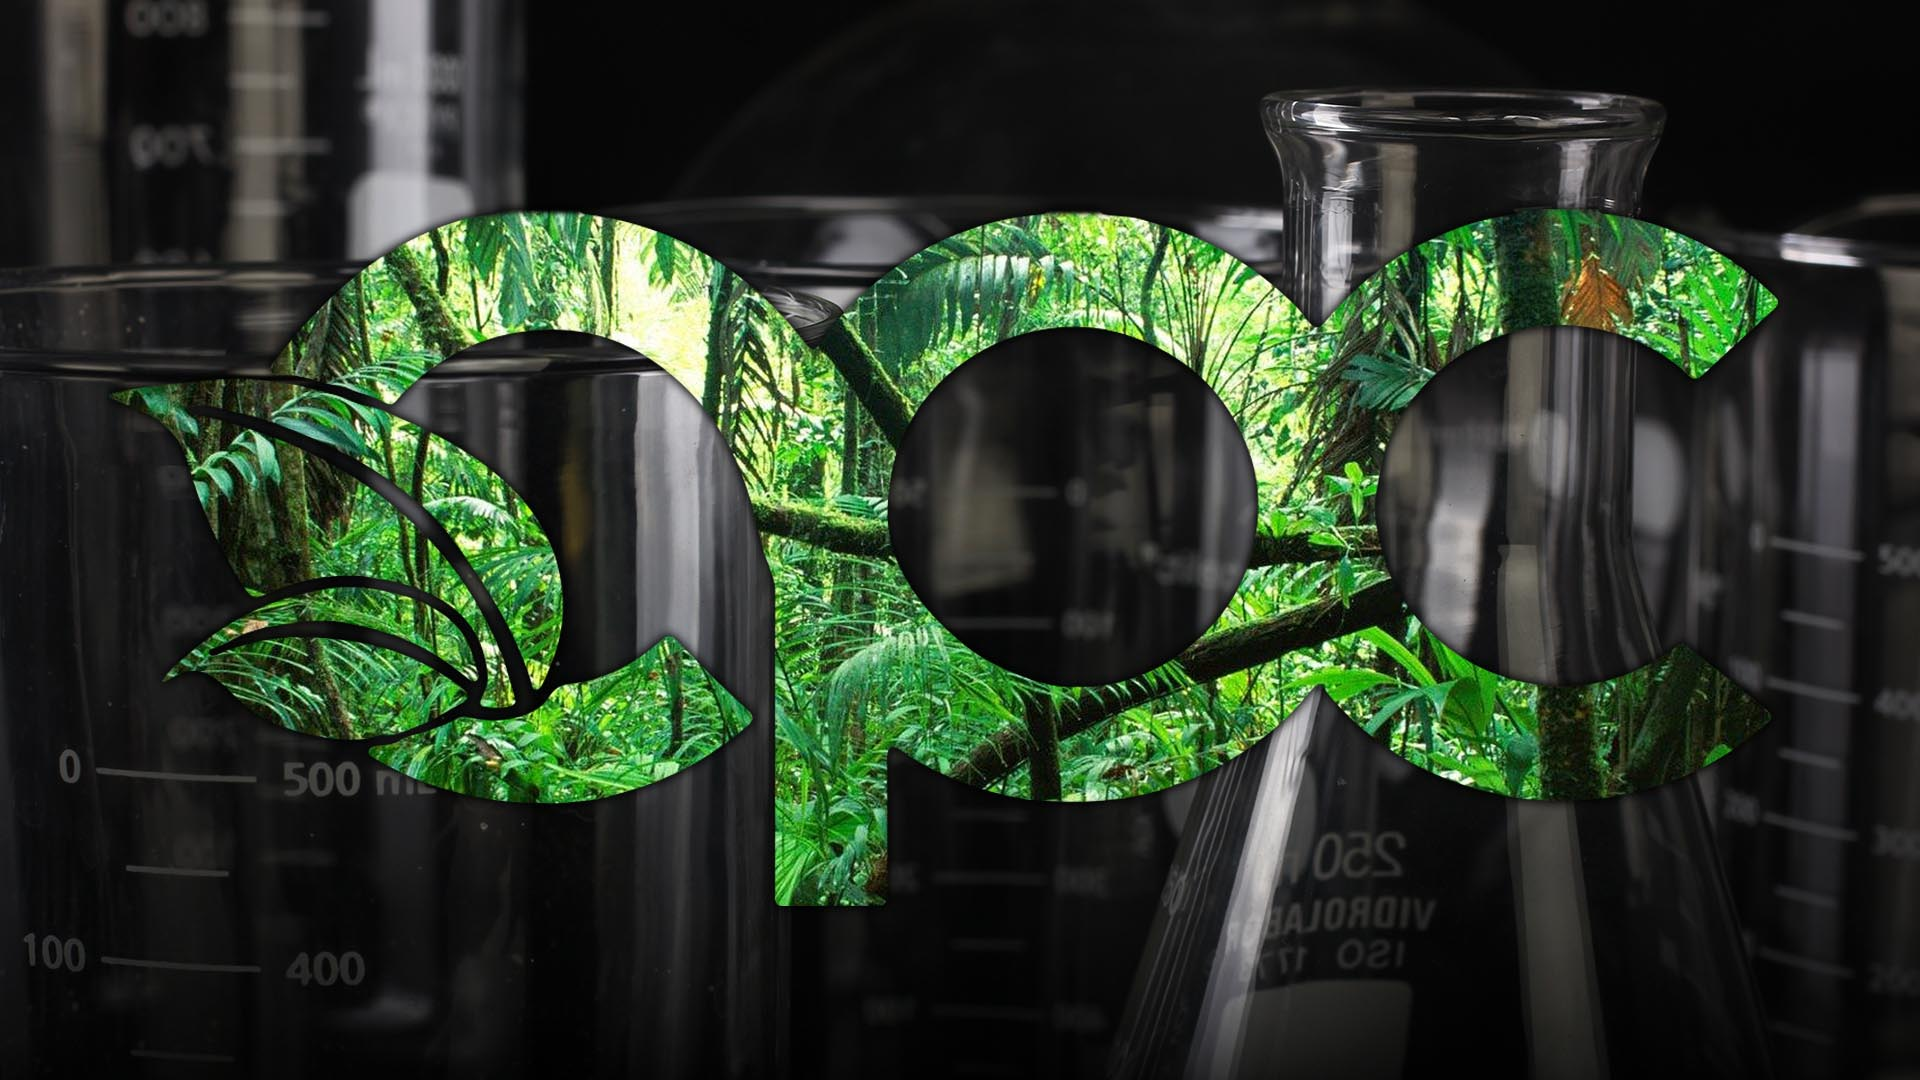 Jungle knockout on glass beaker background in the shape of OPC logo